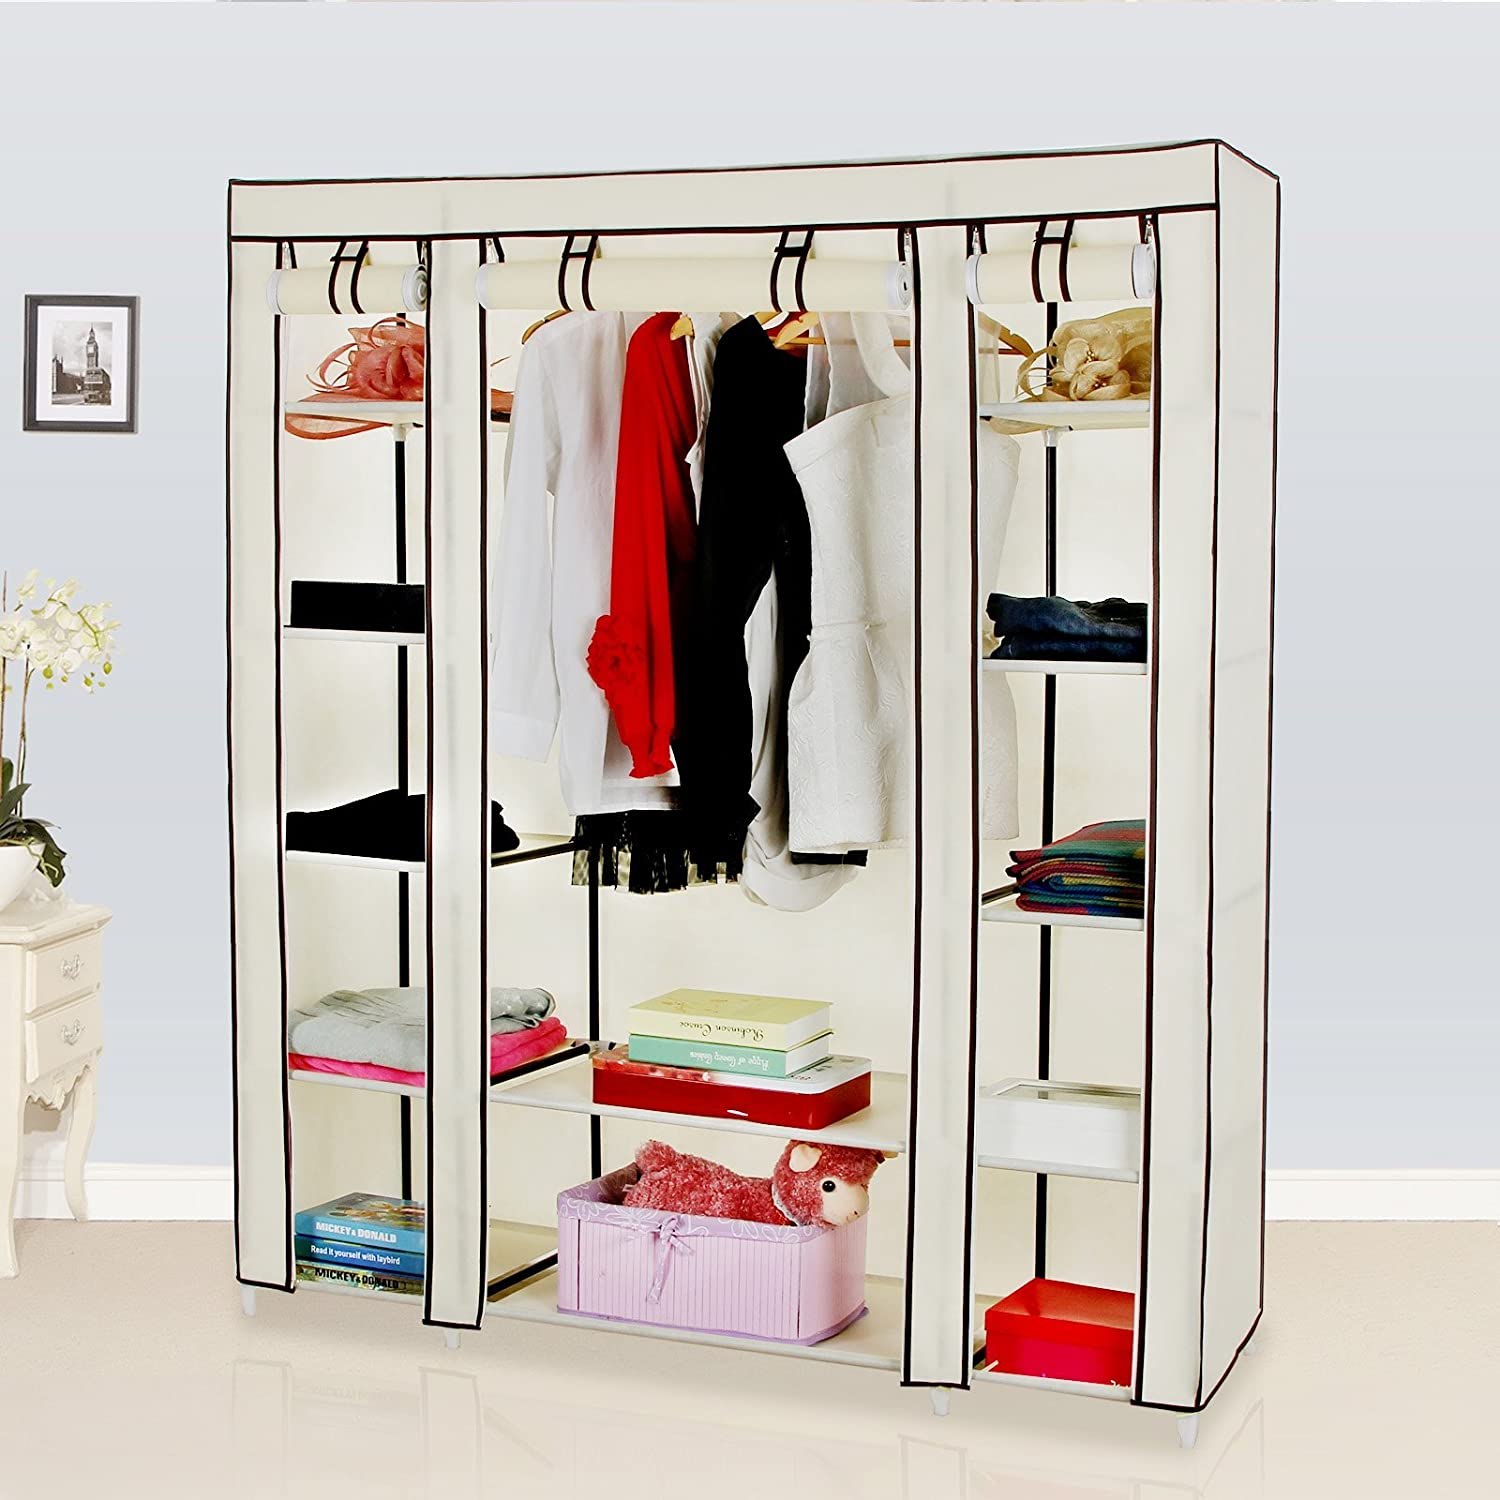 shipping bddd product garden inch closet supreme today overstock wardrobe clothes free whitmor home